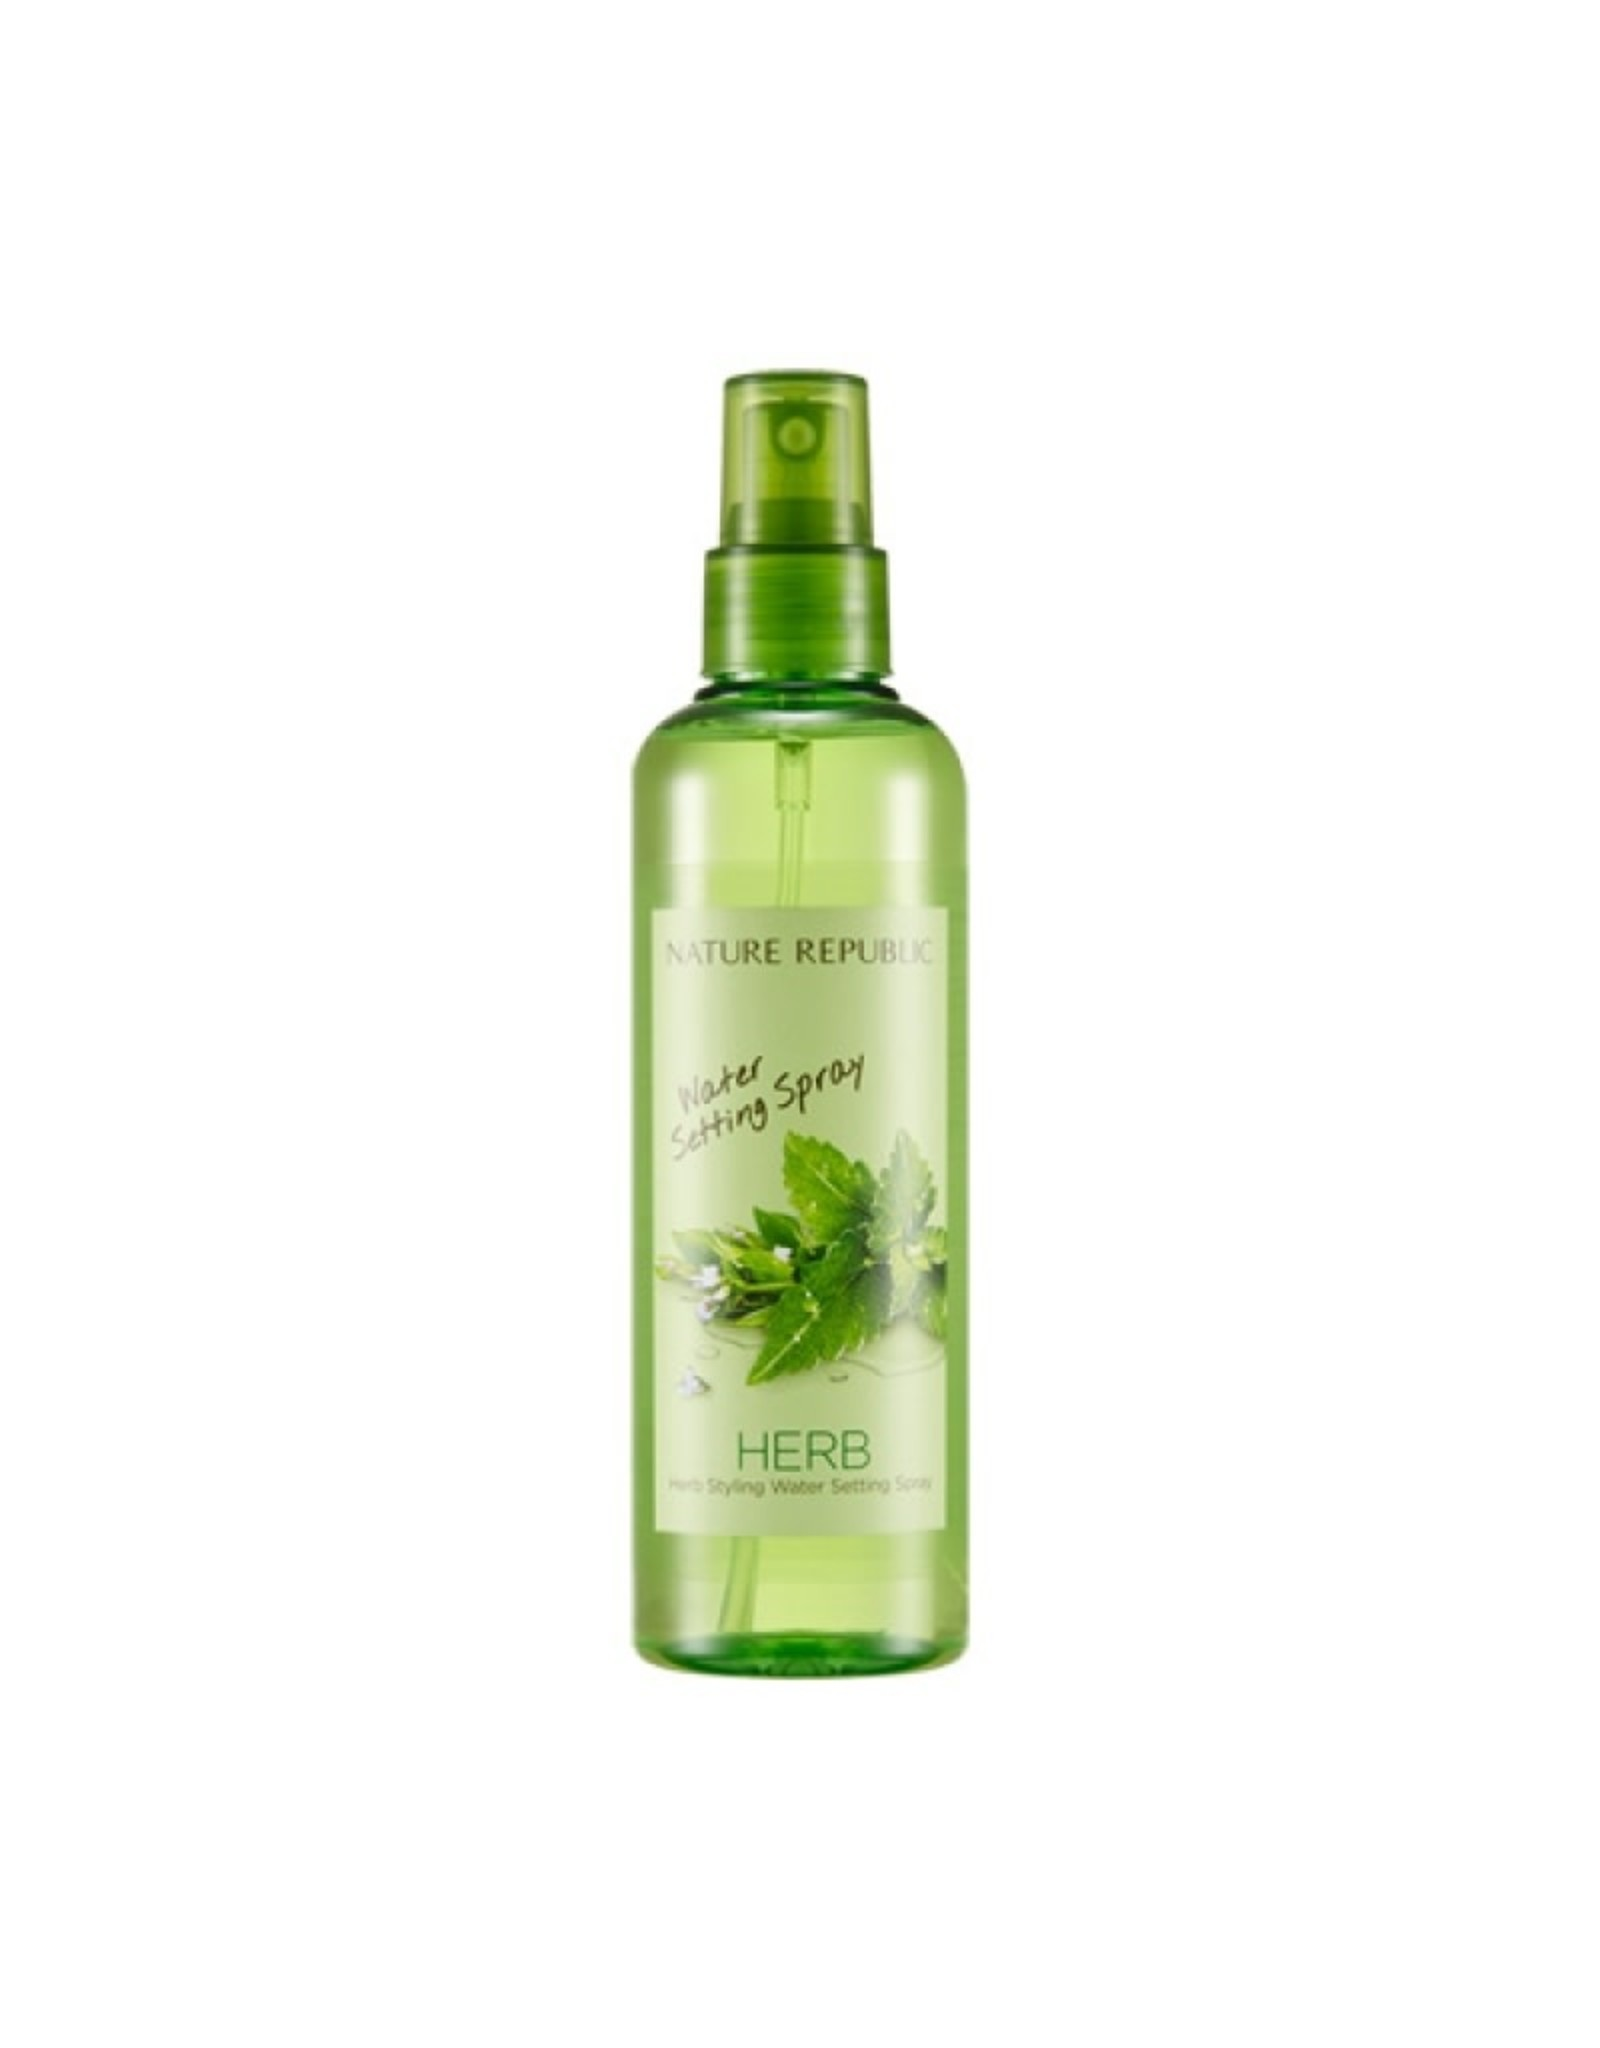 Herb Styling Water Setting Spray